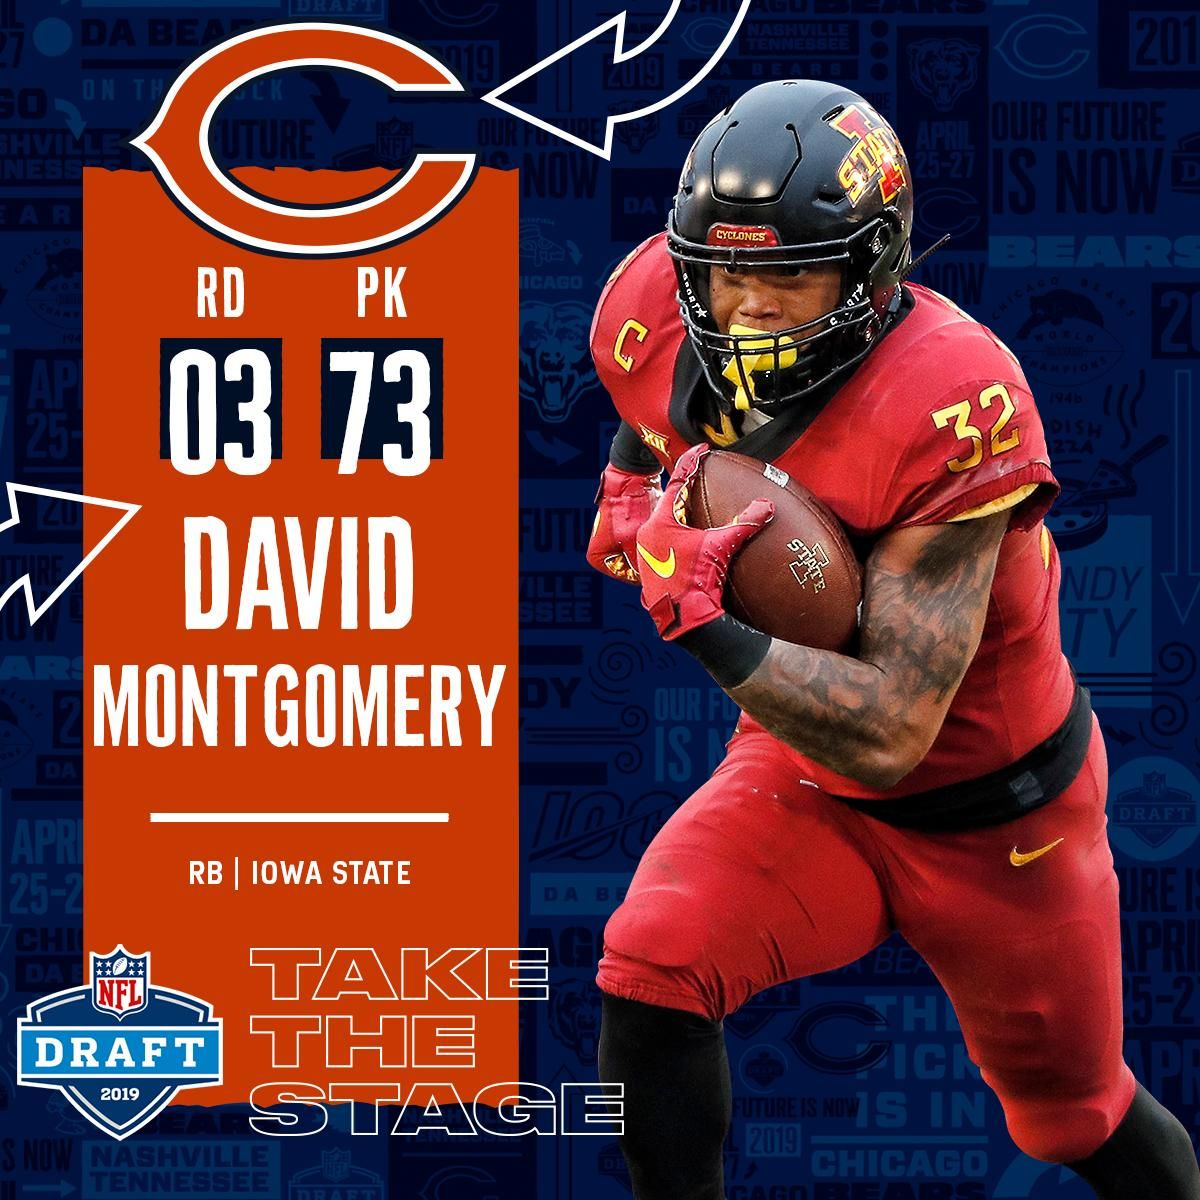 Pin by Donny Dwitama on NFL Draft 2019 Nfl draft, Nfl